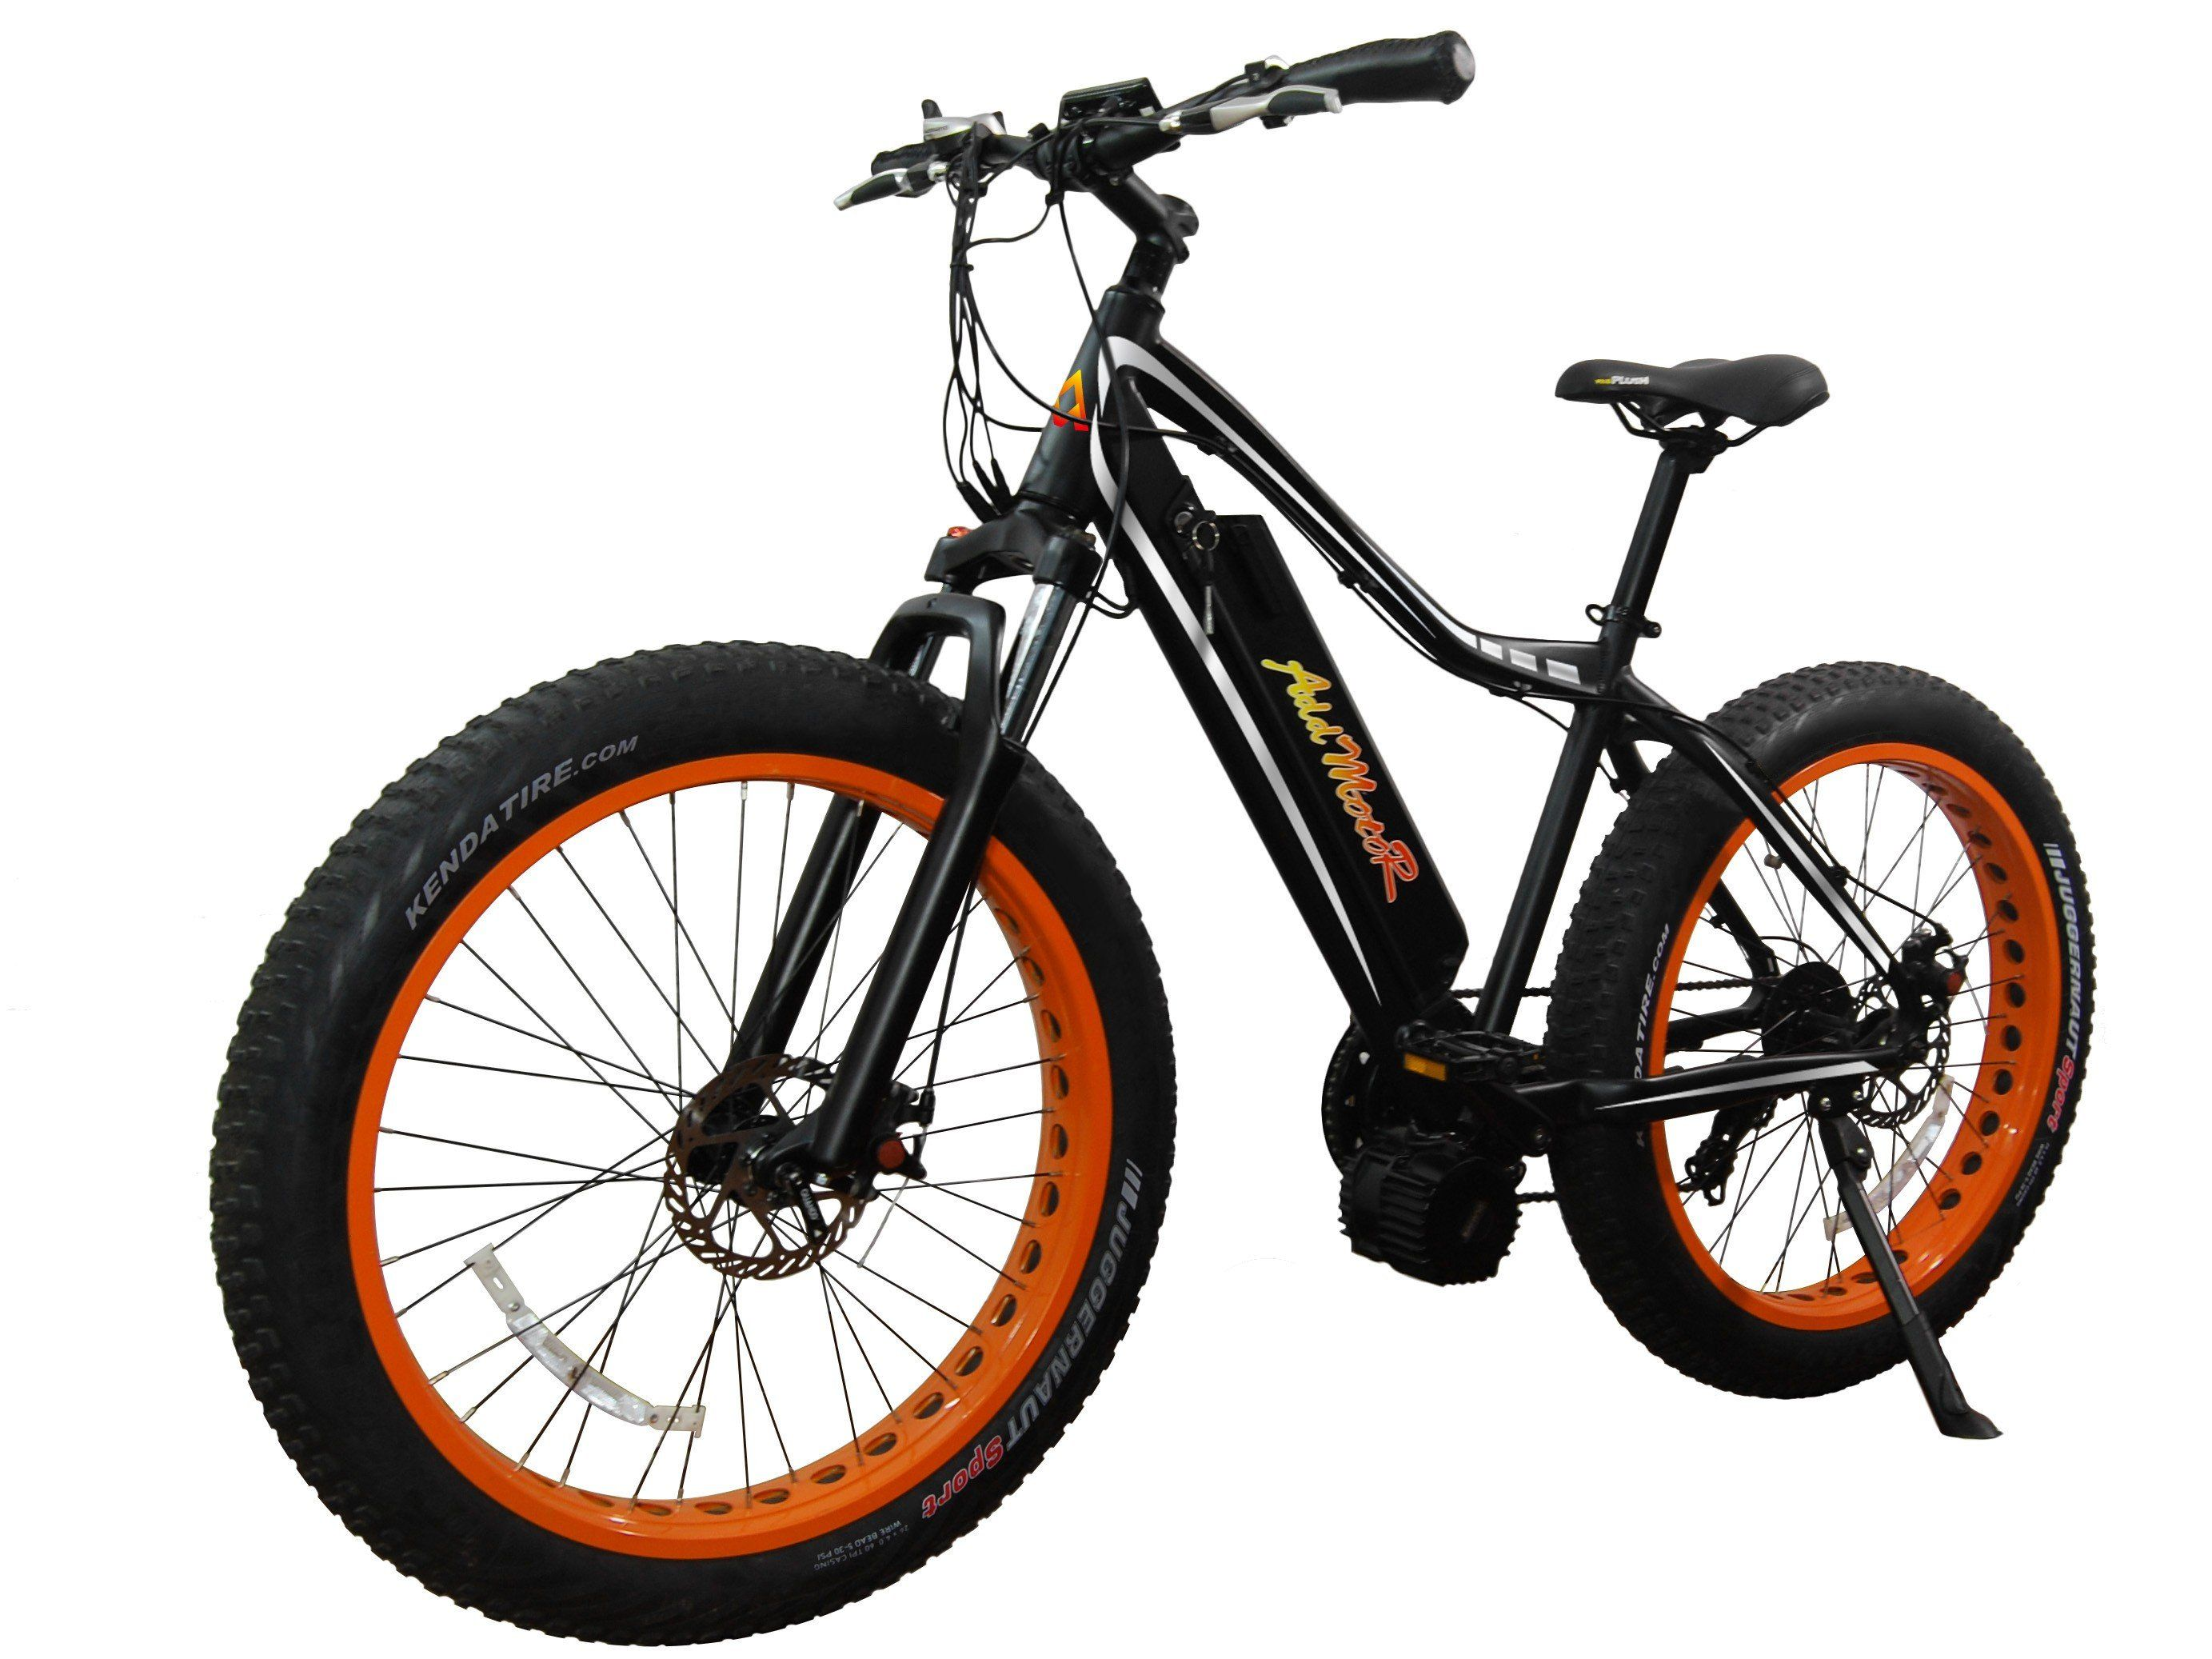 AddMotor Motan M-5800 1000w 26 inch Mid Drive Fat Tire Electric Ebike